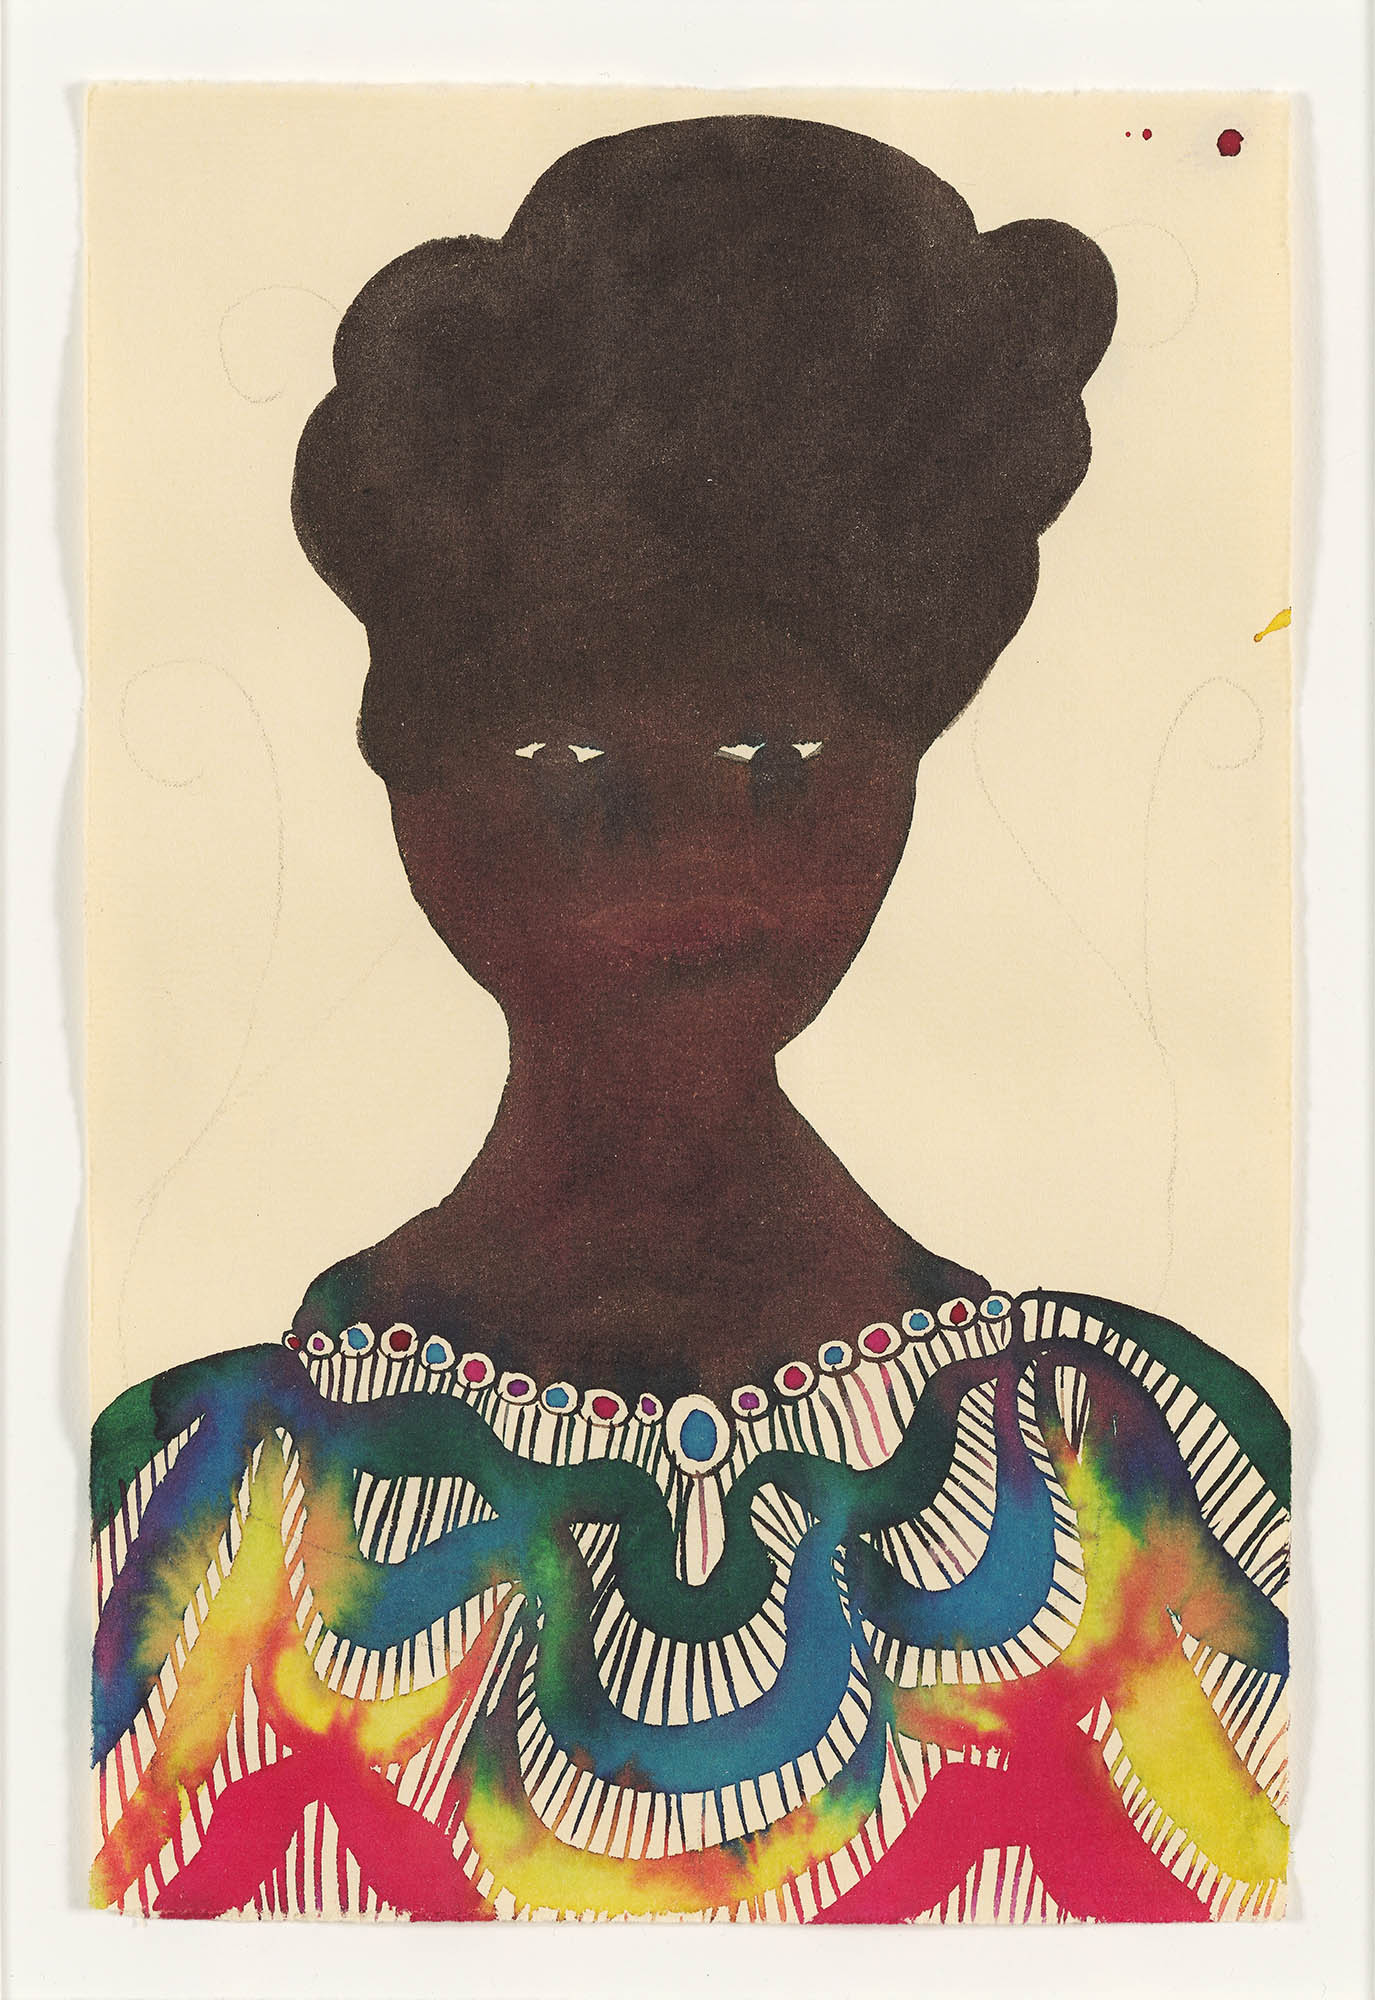 Chris Ofili, Untitled, 2003